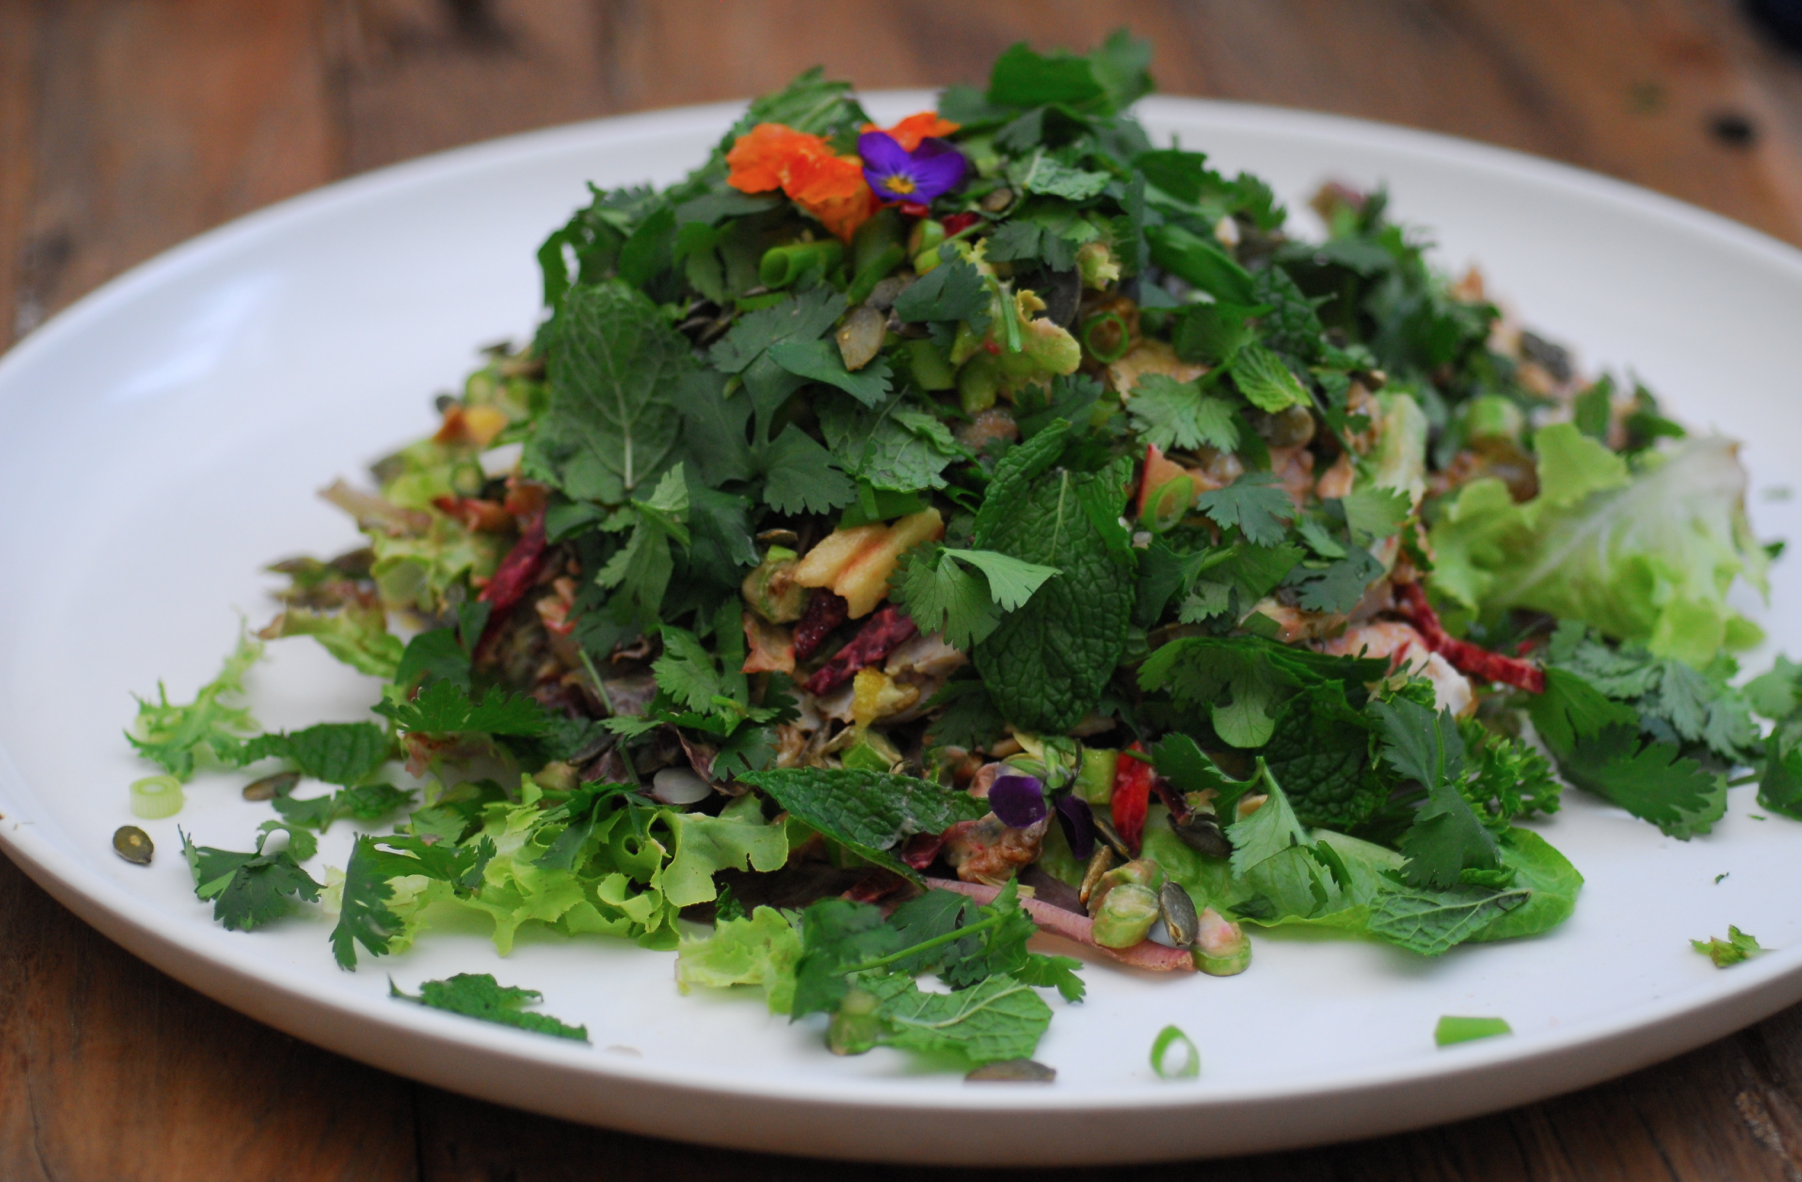 Greens, herb, spice, and citrus salad